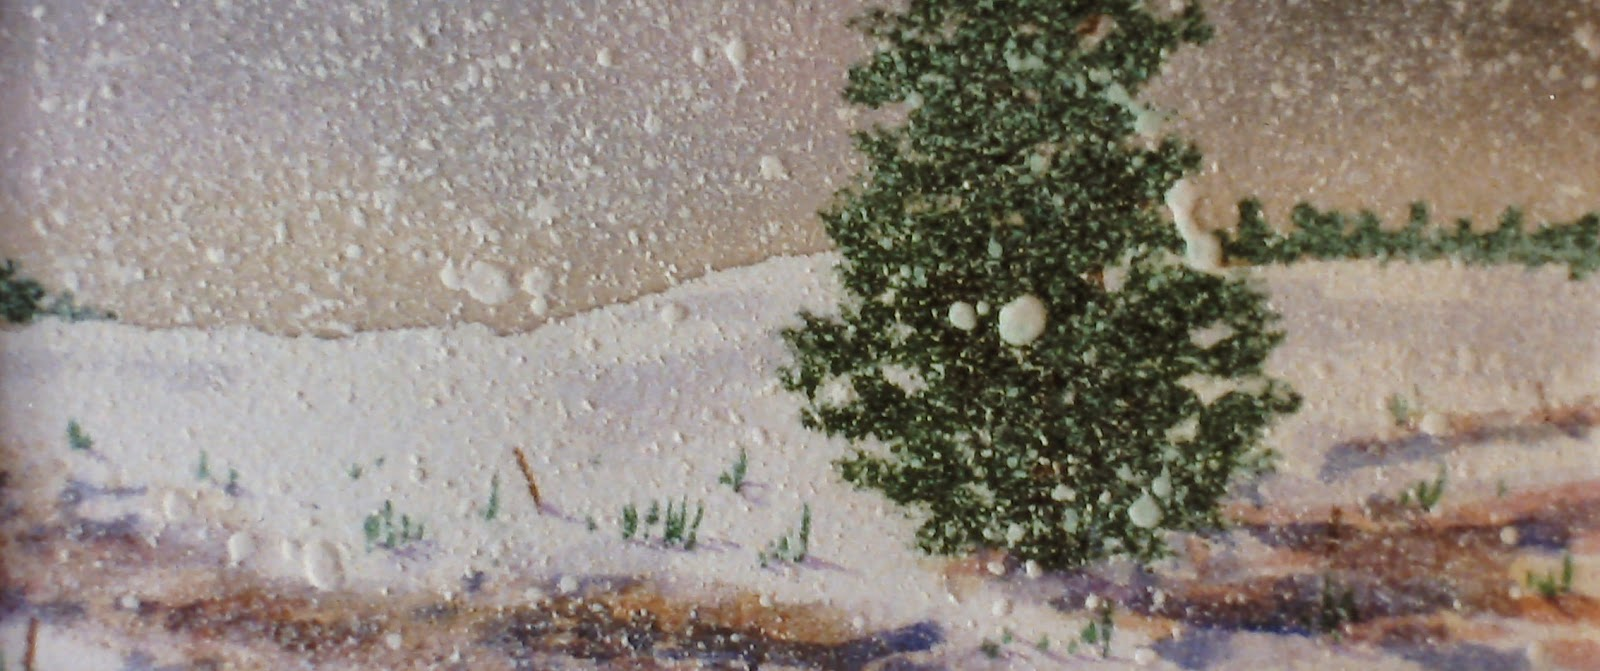 Snowfall, near Braemar, Aberdeenshire, Scotland  16x40 inches. Watercolor on paper, c. 1989.  In a private collection in Braemar, Scotland by F Lennox Campello